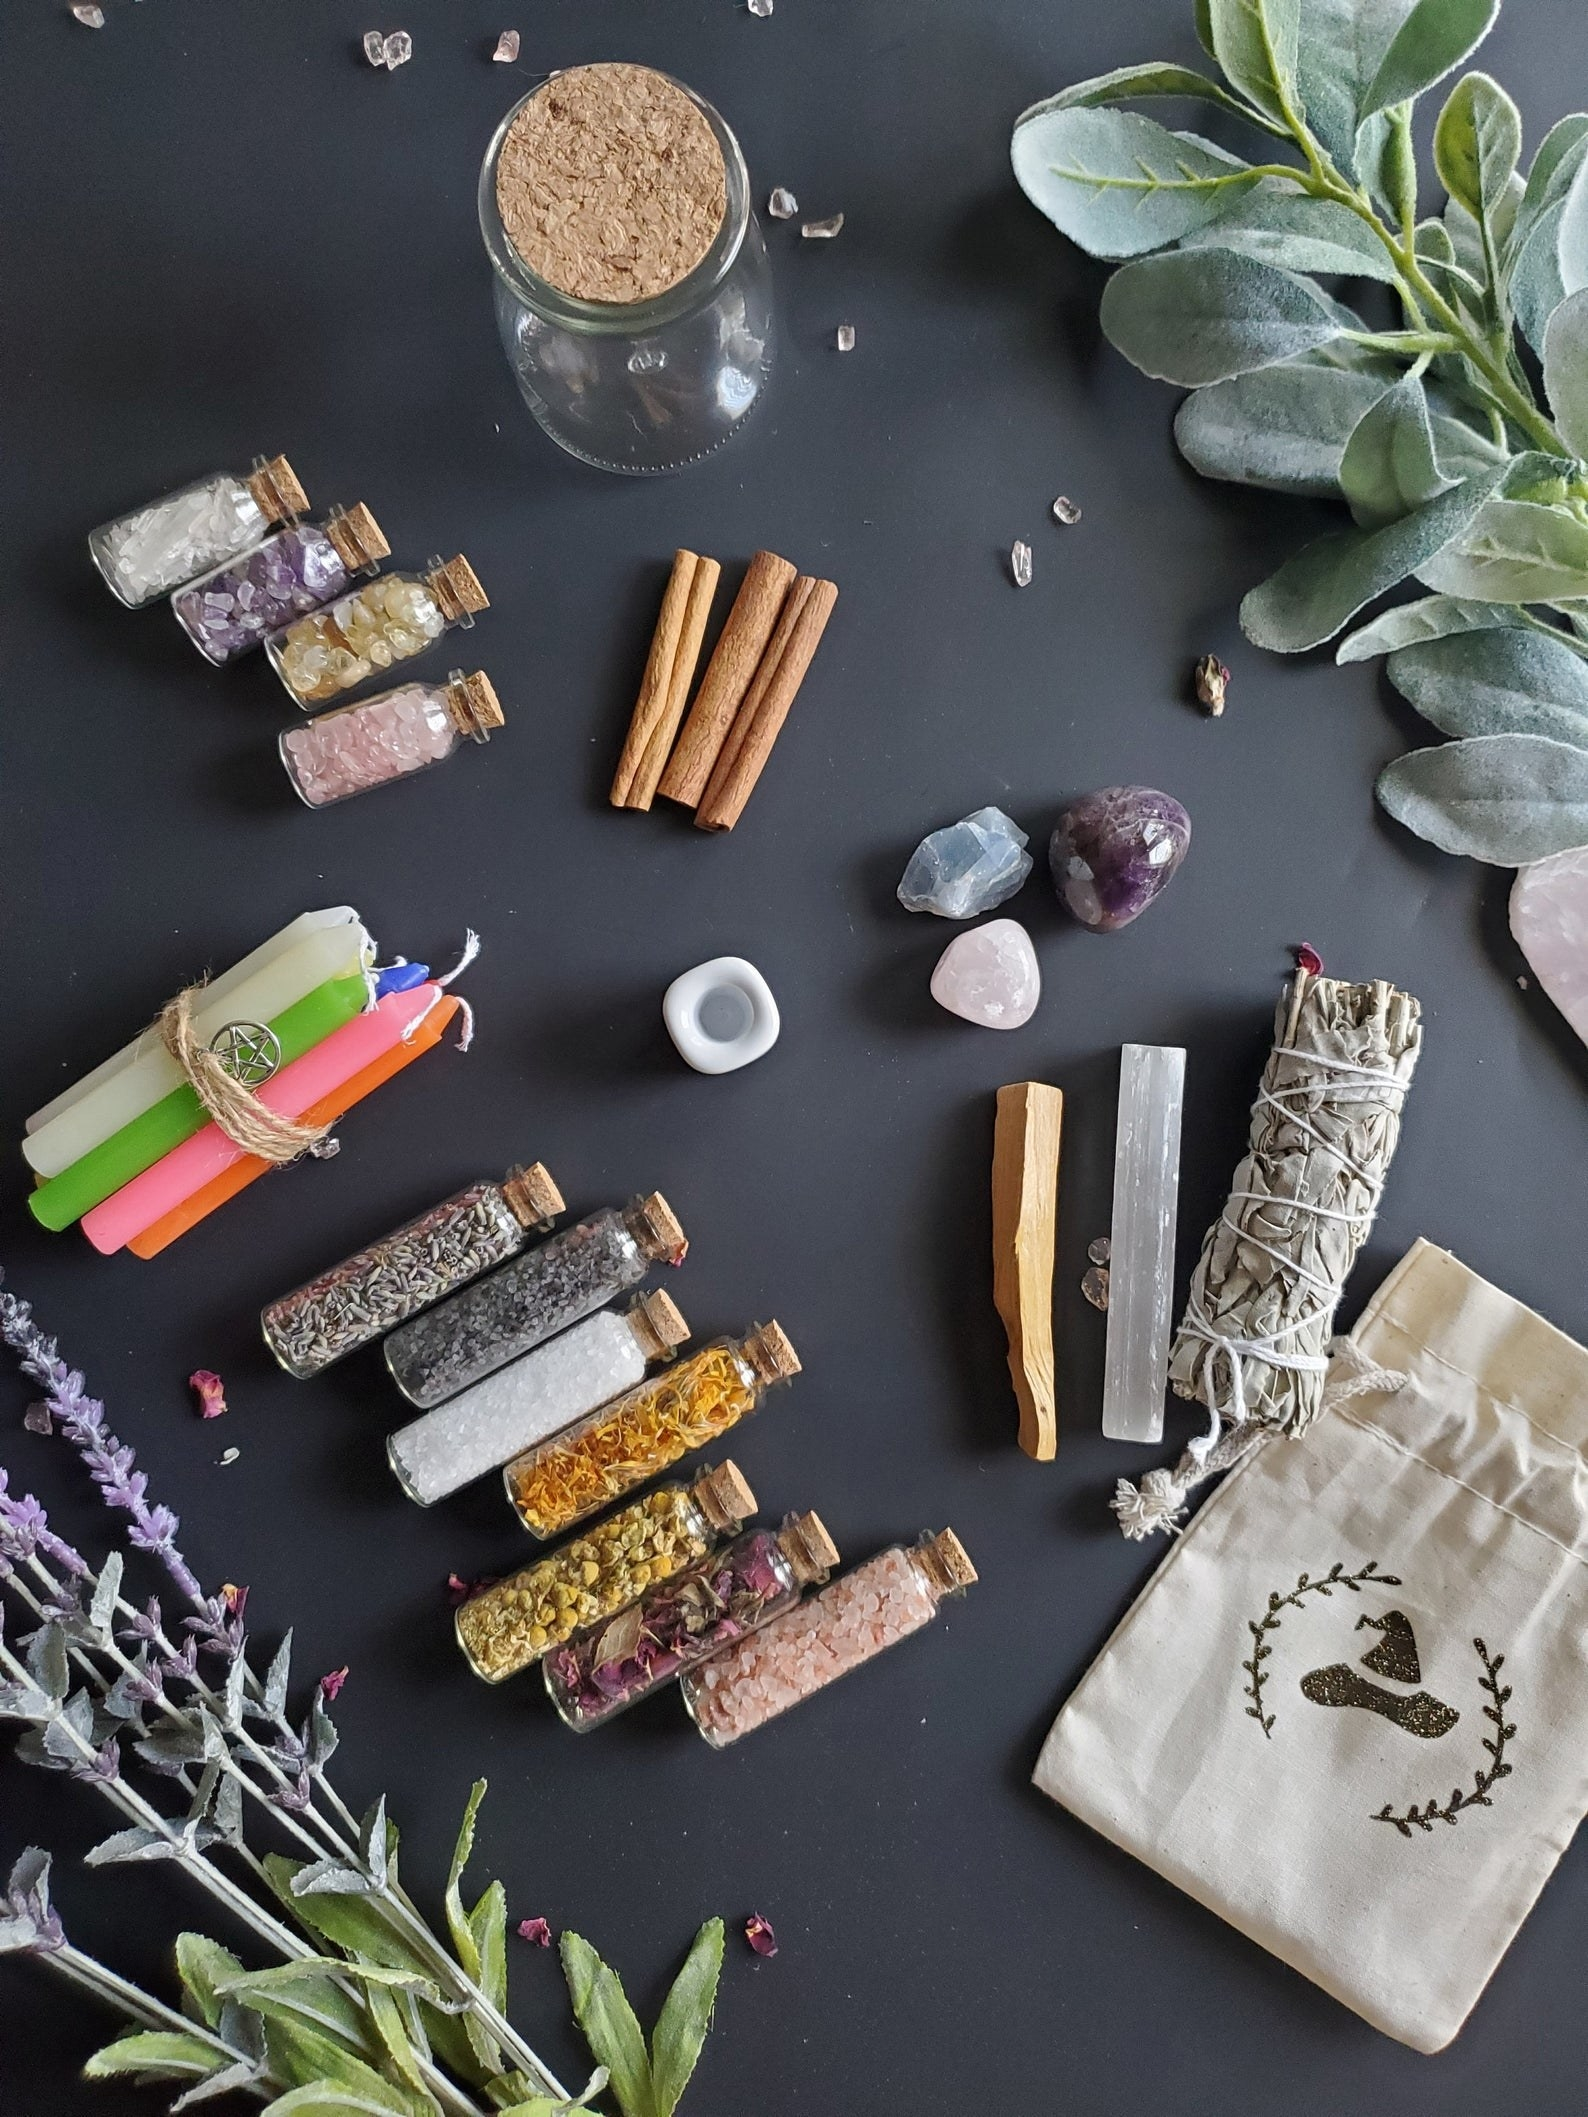 Some components of the kit including vials of verbs and crystals, stones, and candles